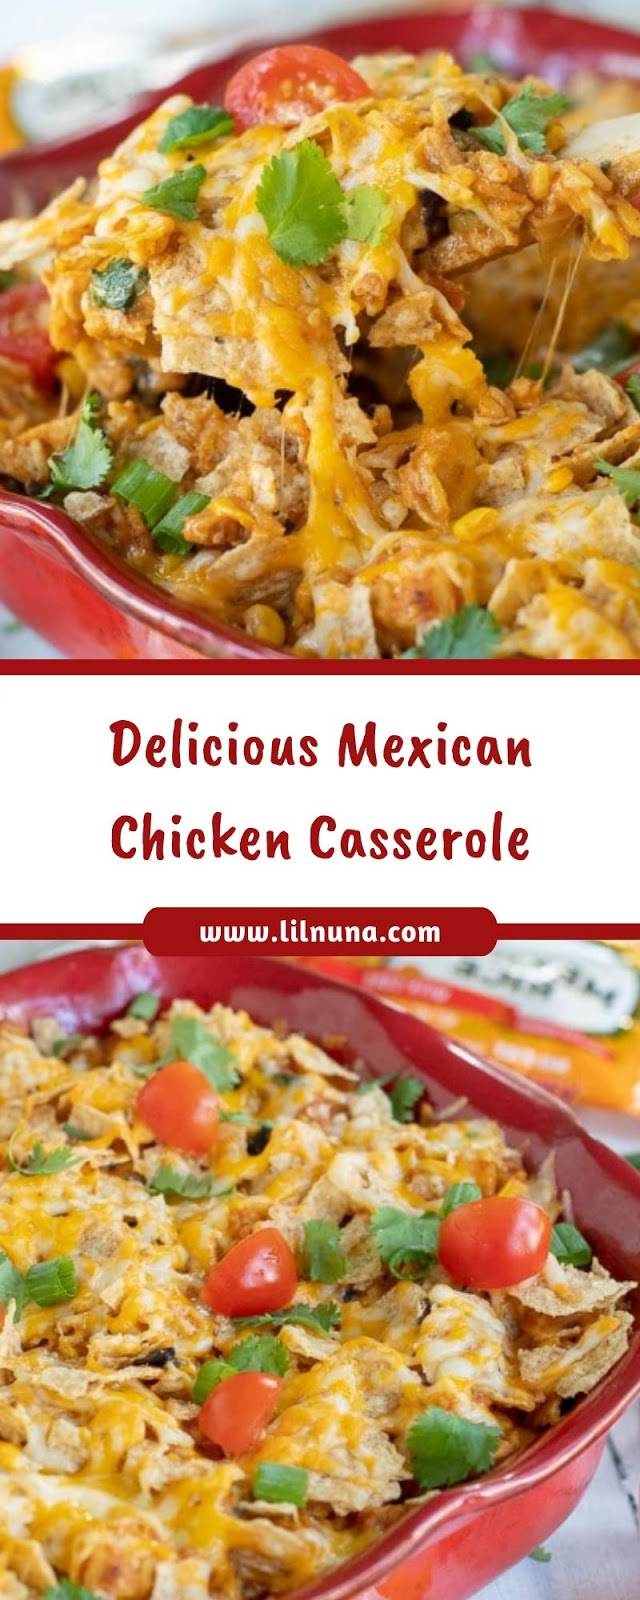 Delicious Mexican Chicken Casserole